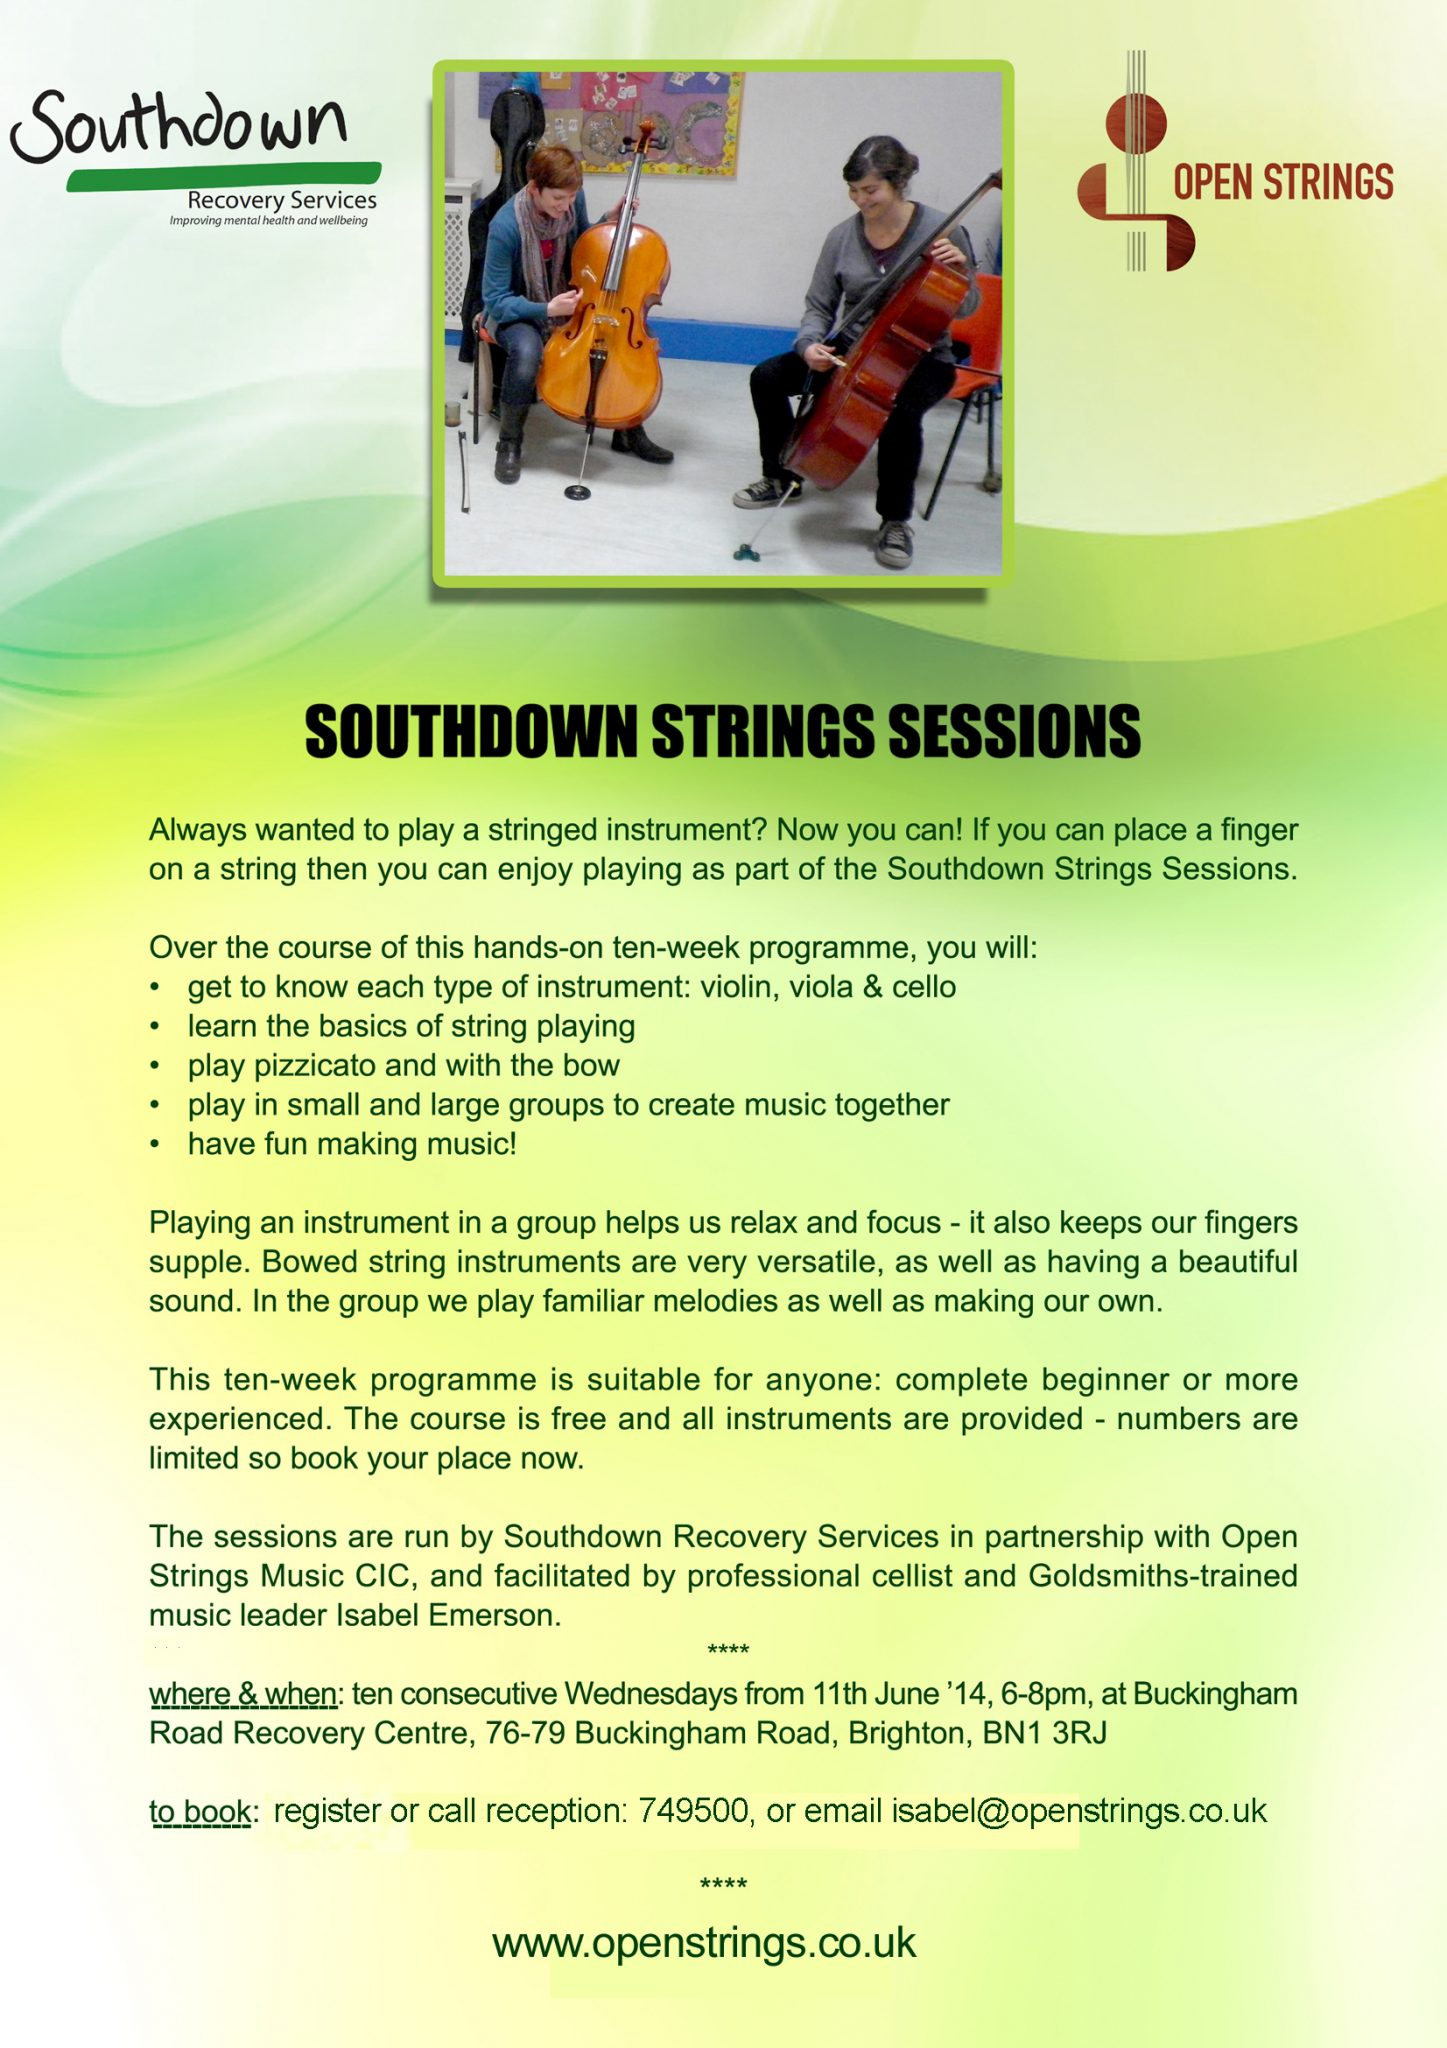 Southdown Strings Sessions New Music And Mental Health Project